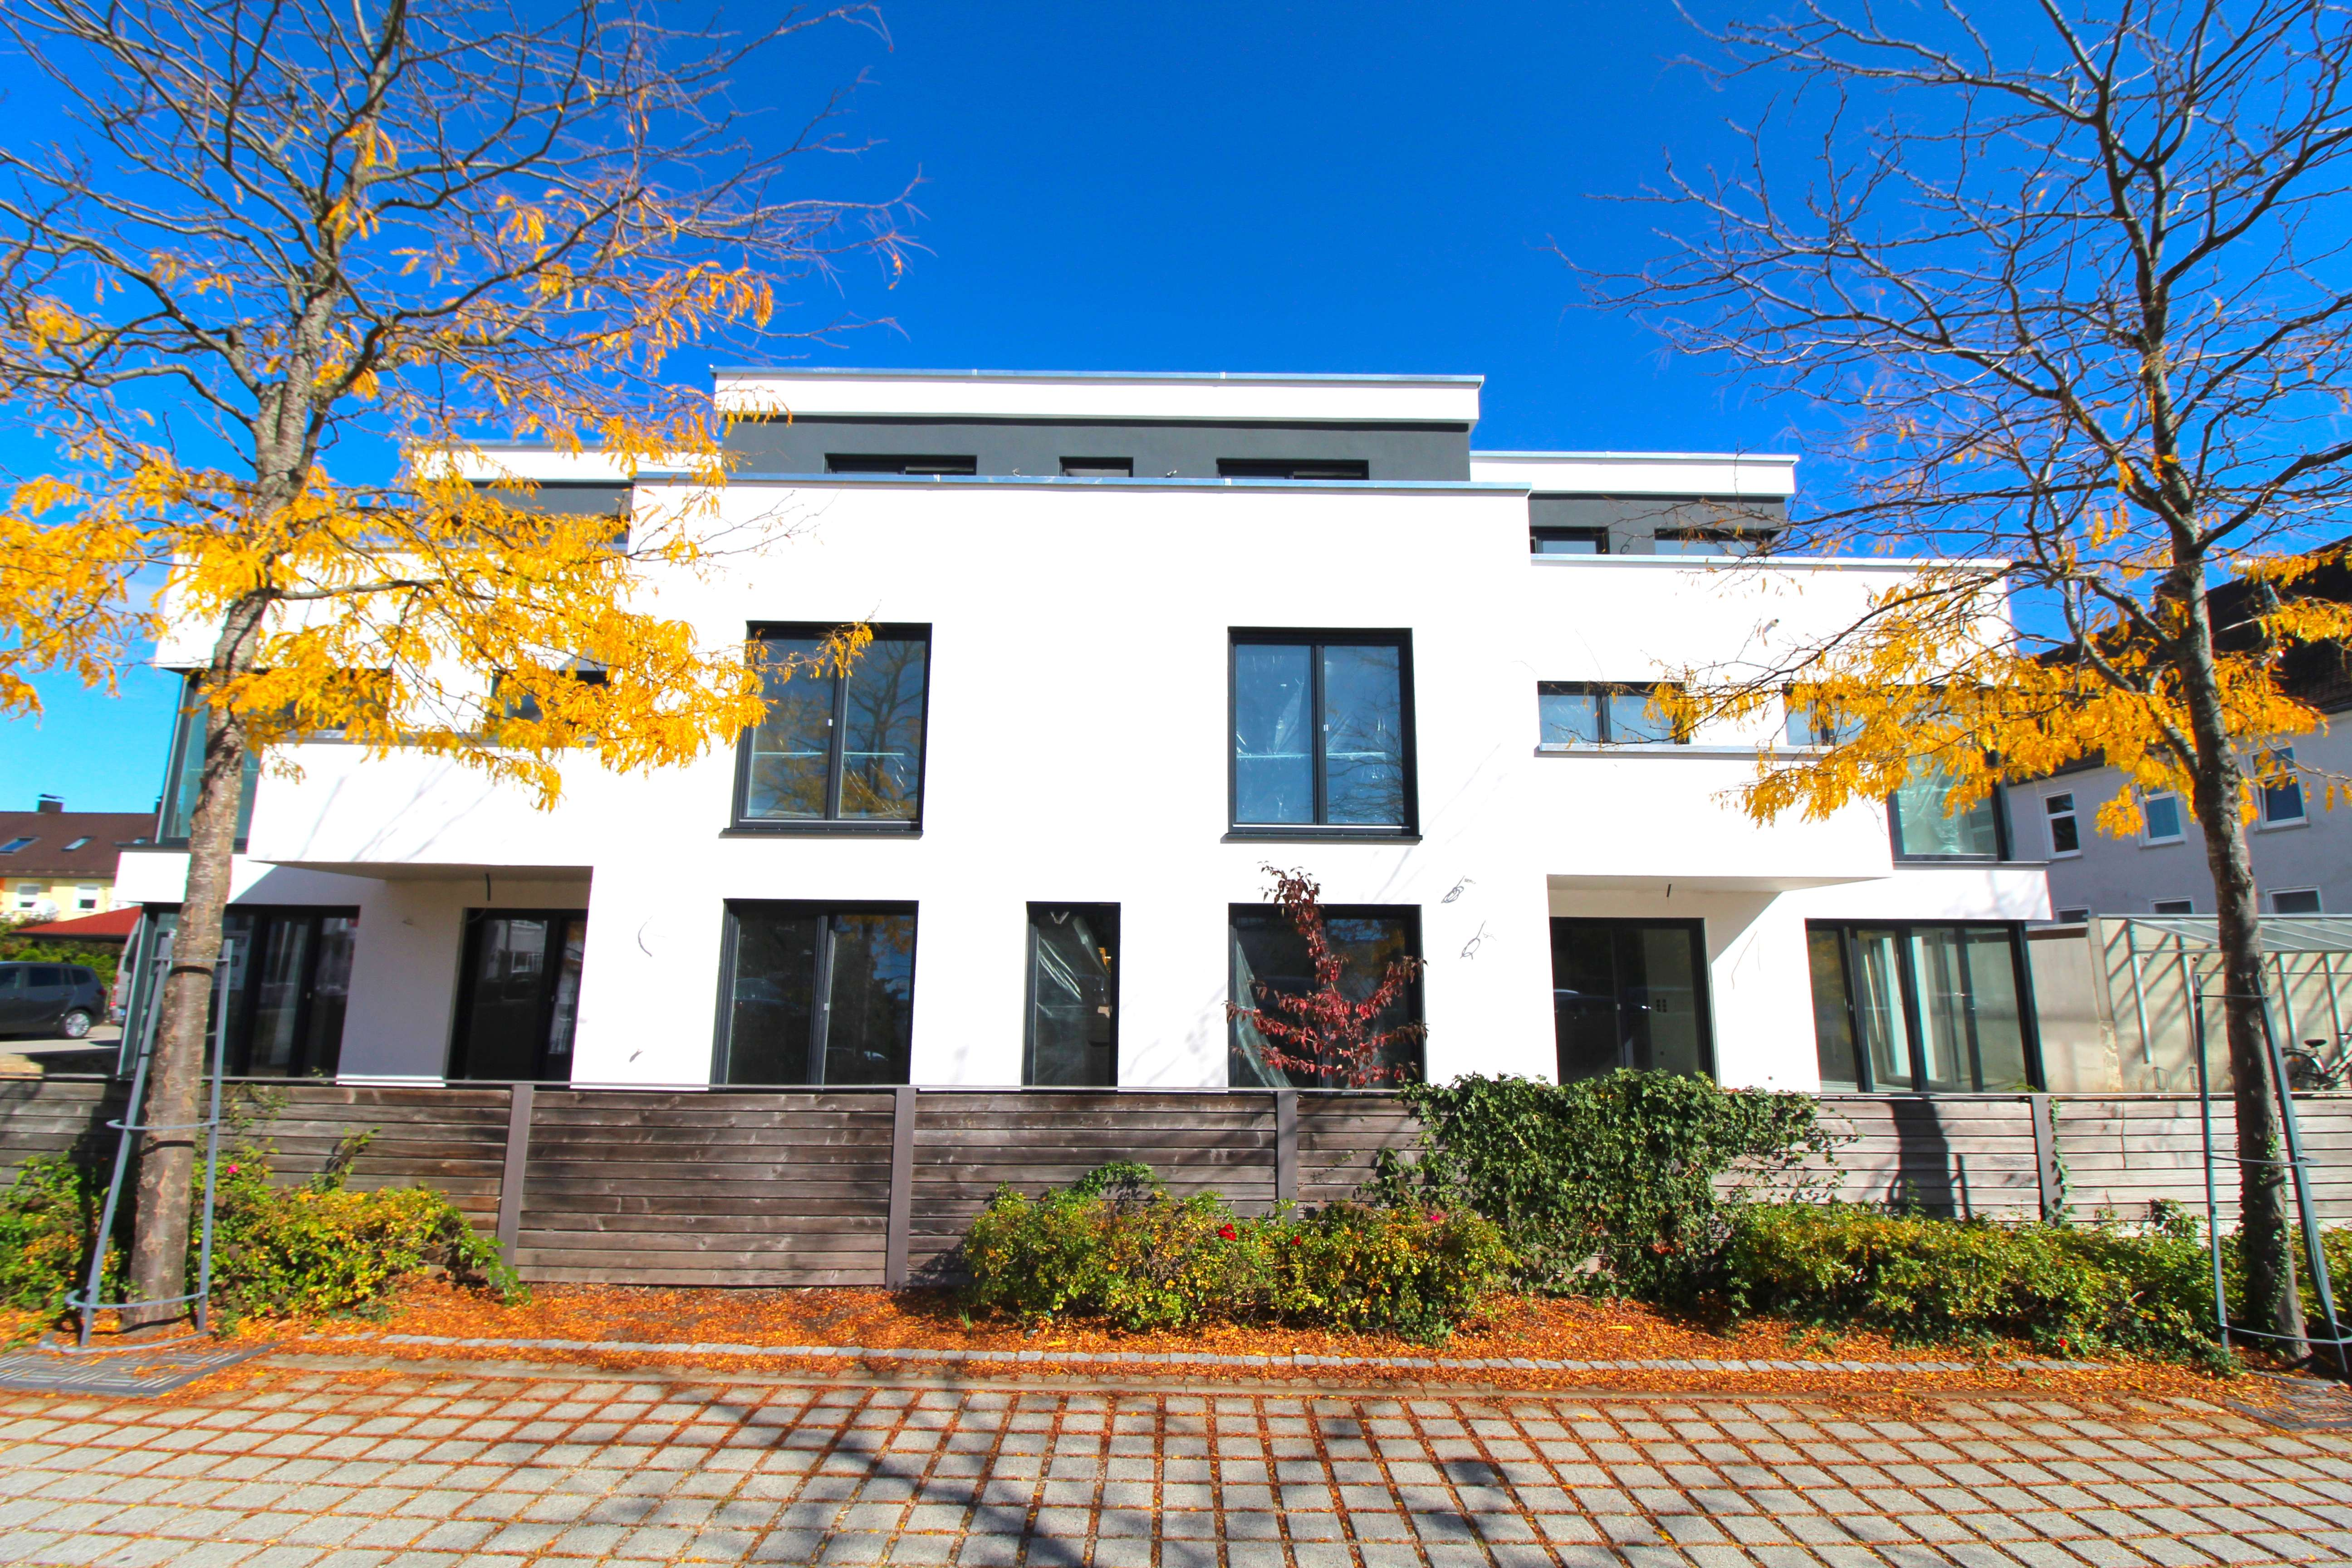 *Penthousewohnung* in TOP-LAGE in Neutraubling